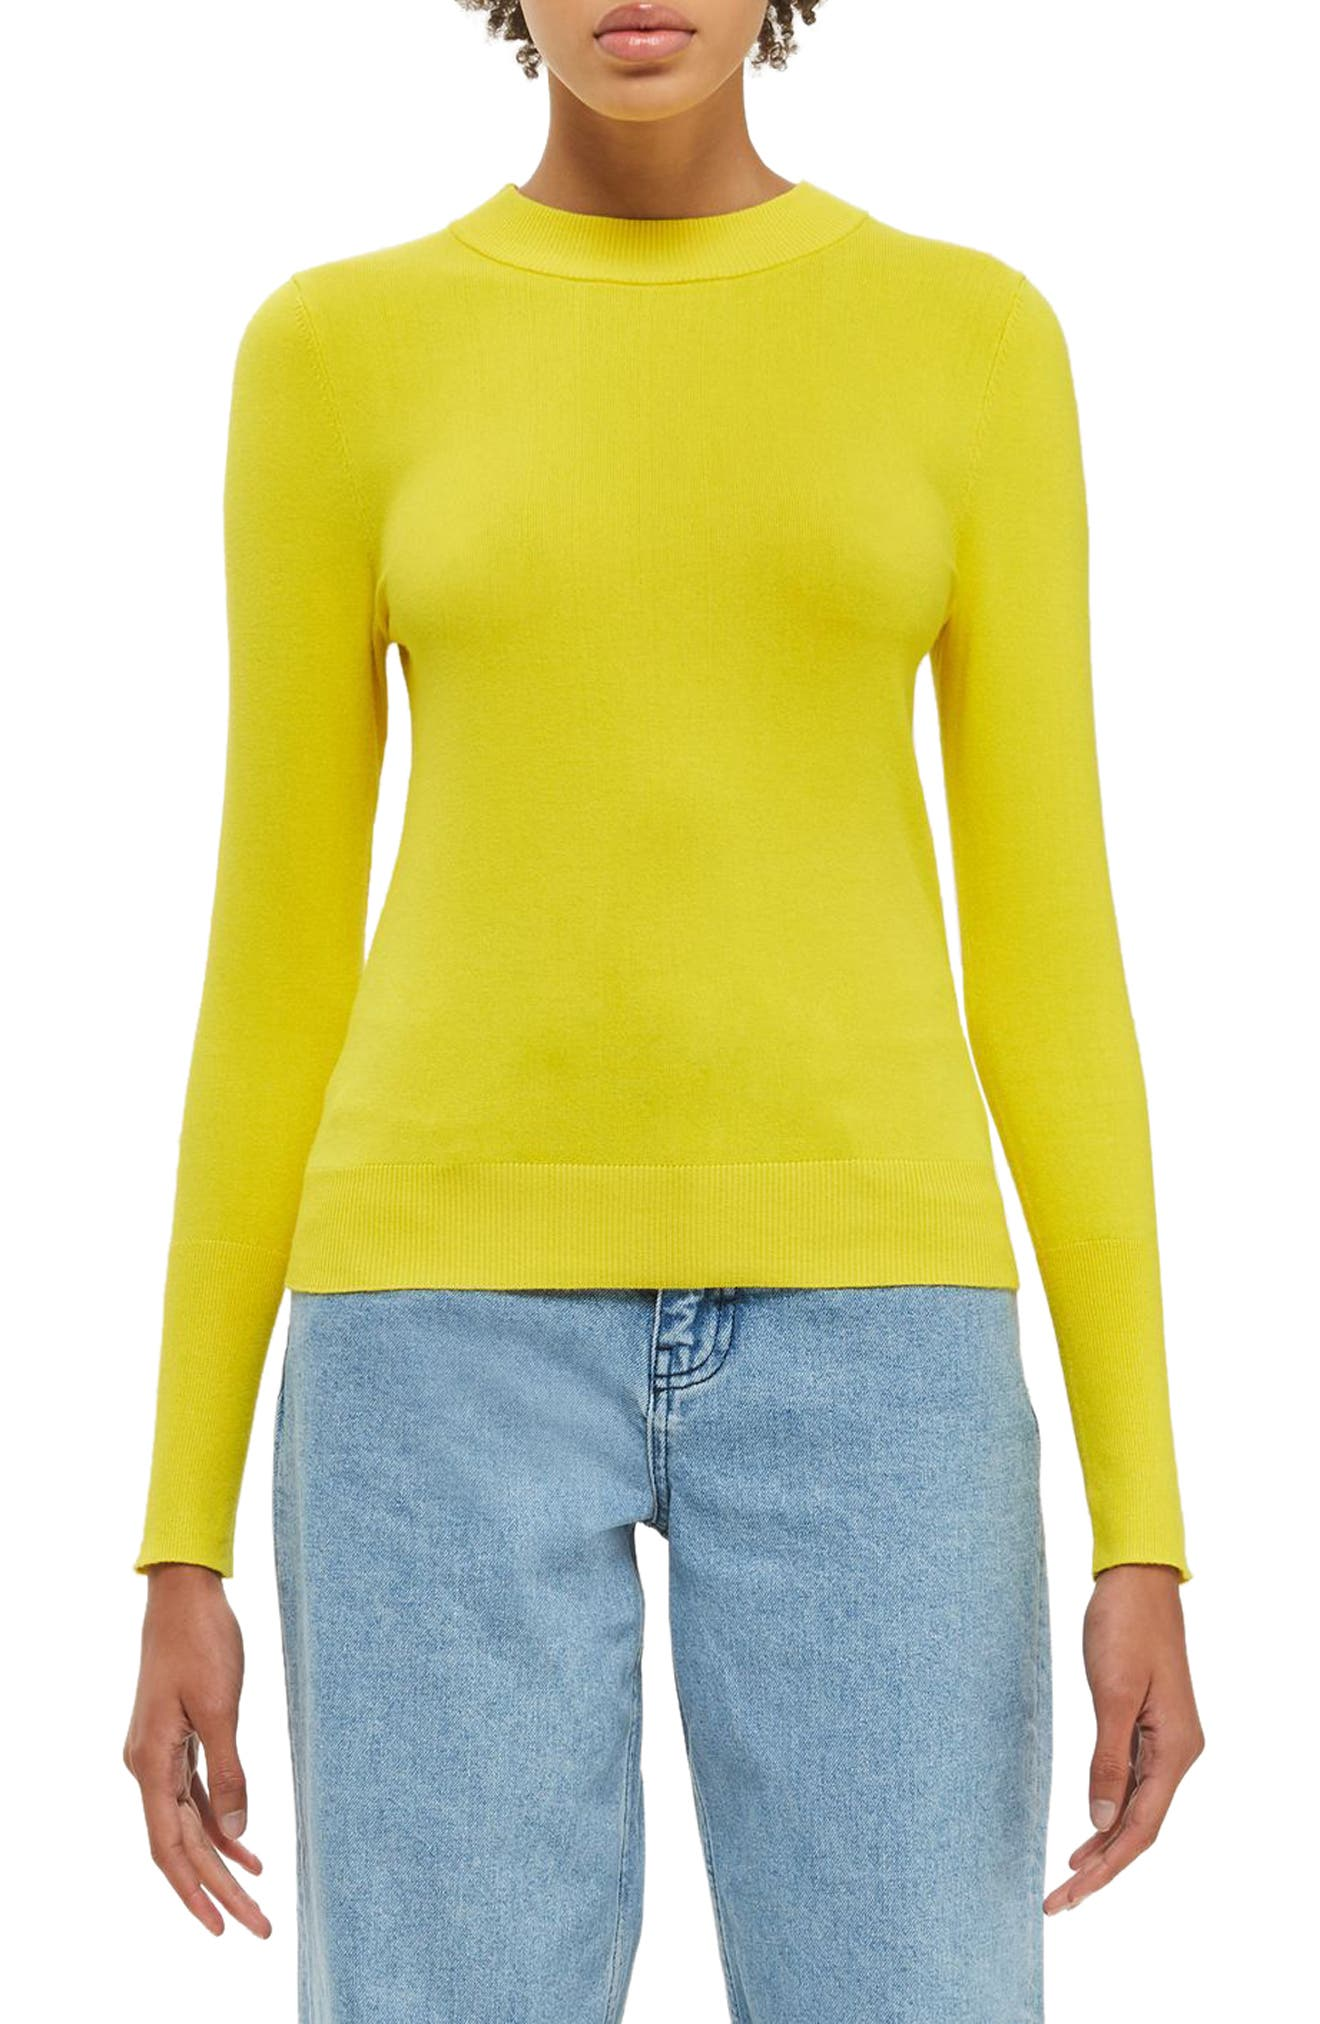 Topshop Boutique Crew Knit Sweater